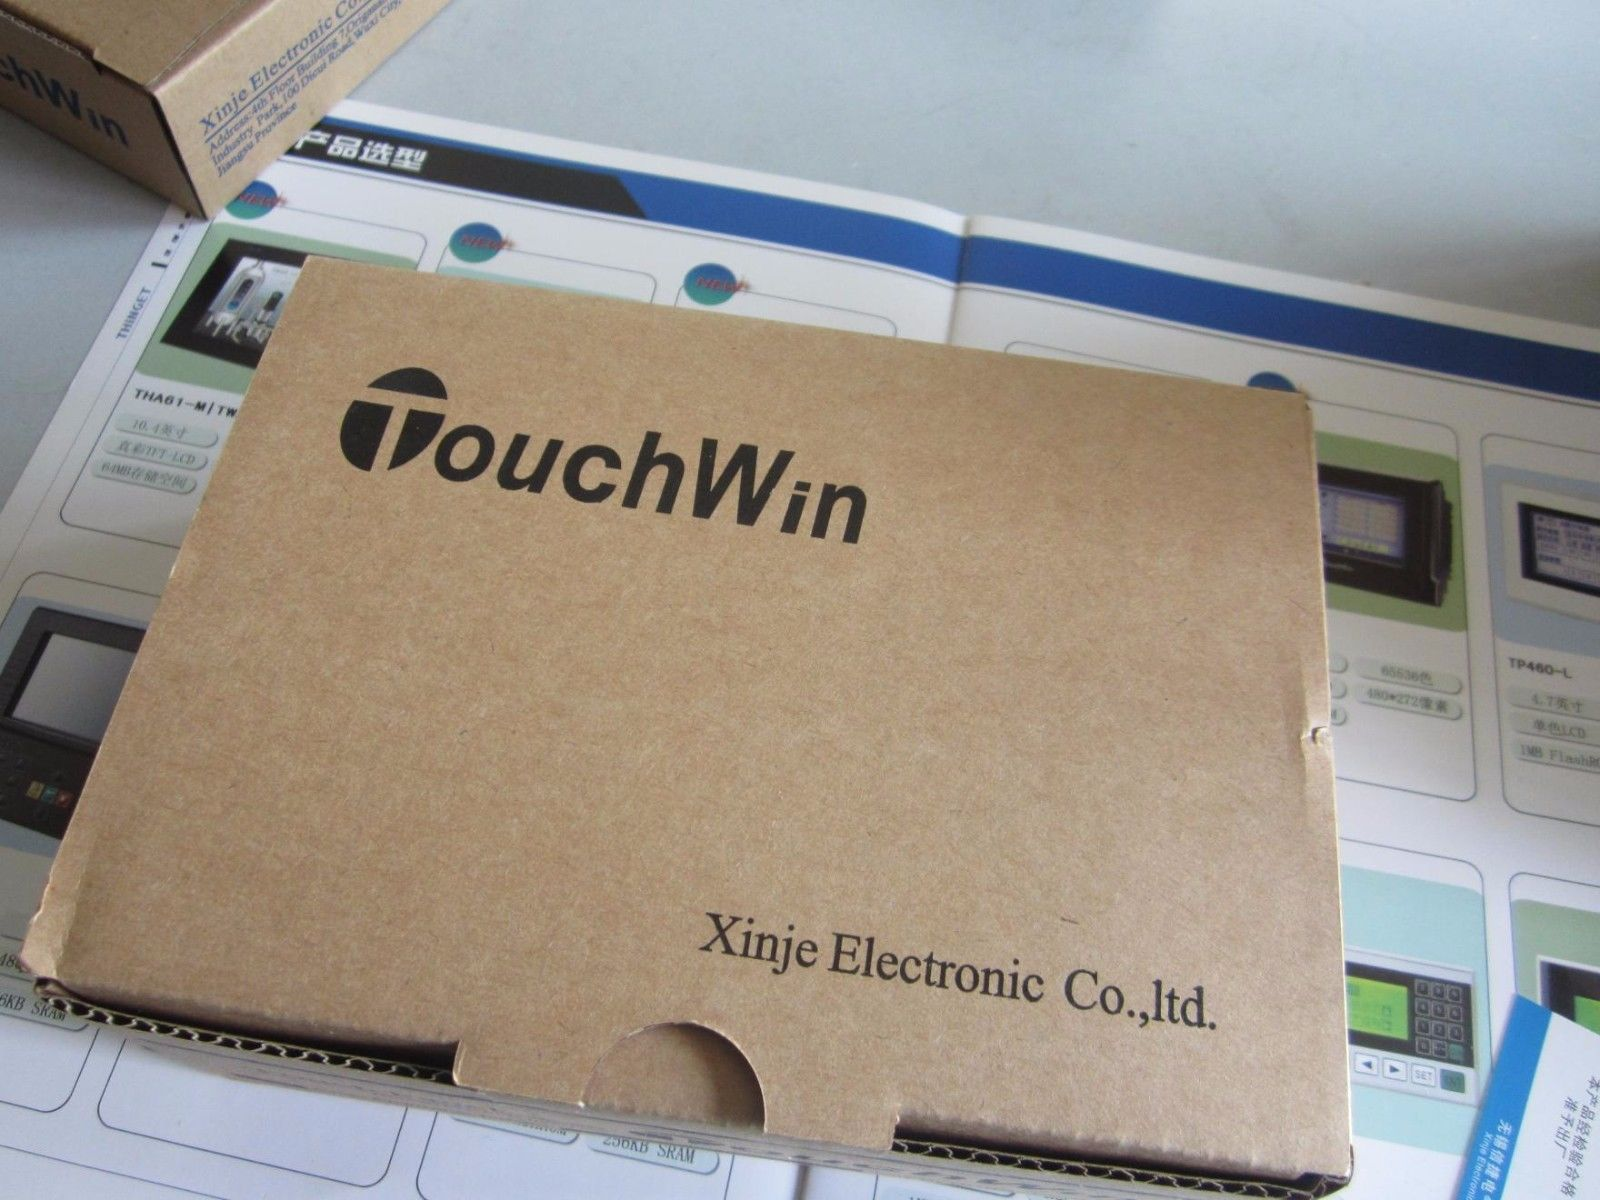 TH465-MT XINJE Touchwin HMI Touch Screen 4.3 inch with program cable new